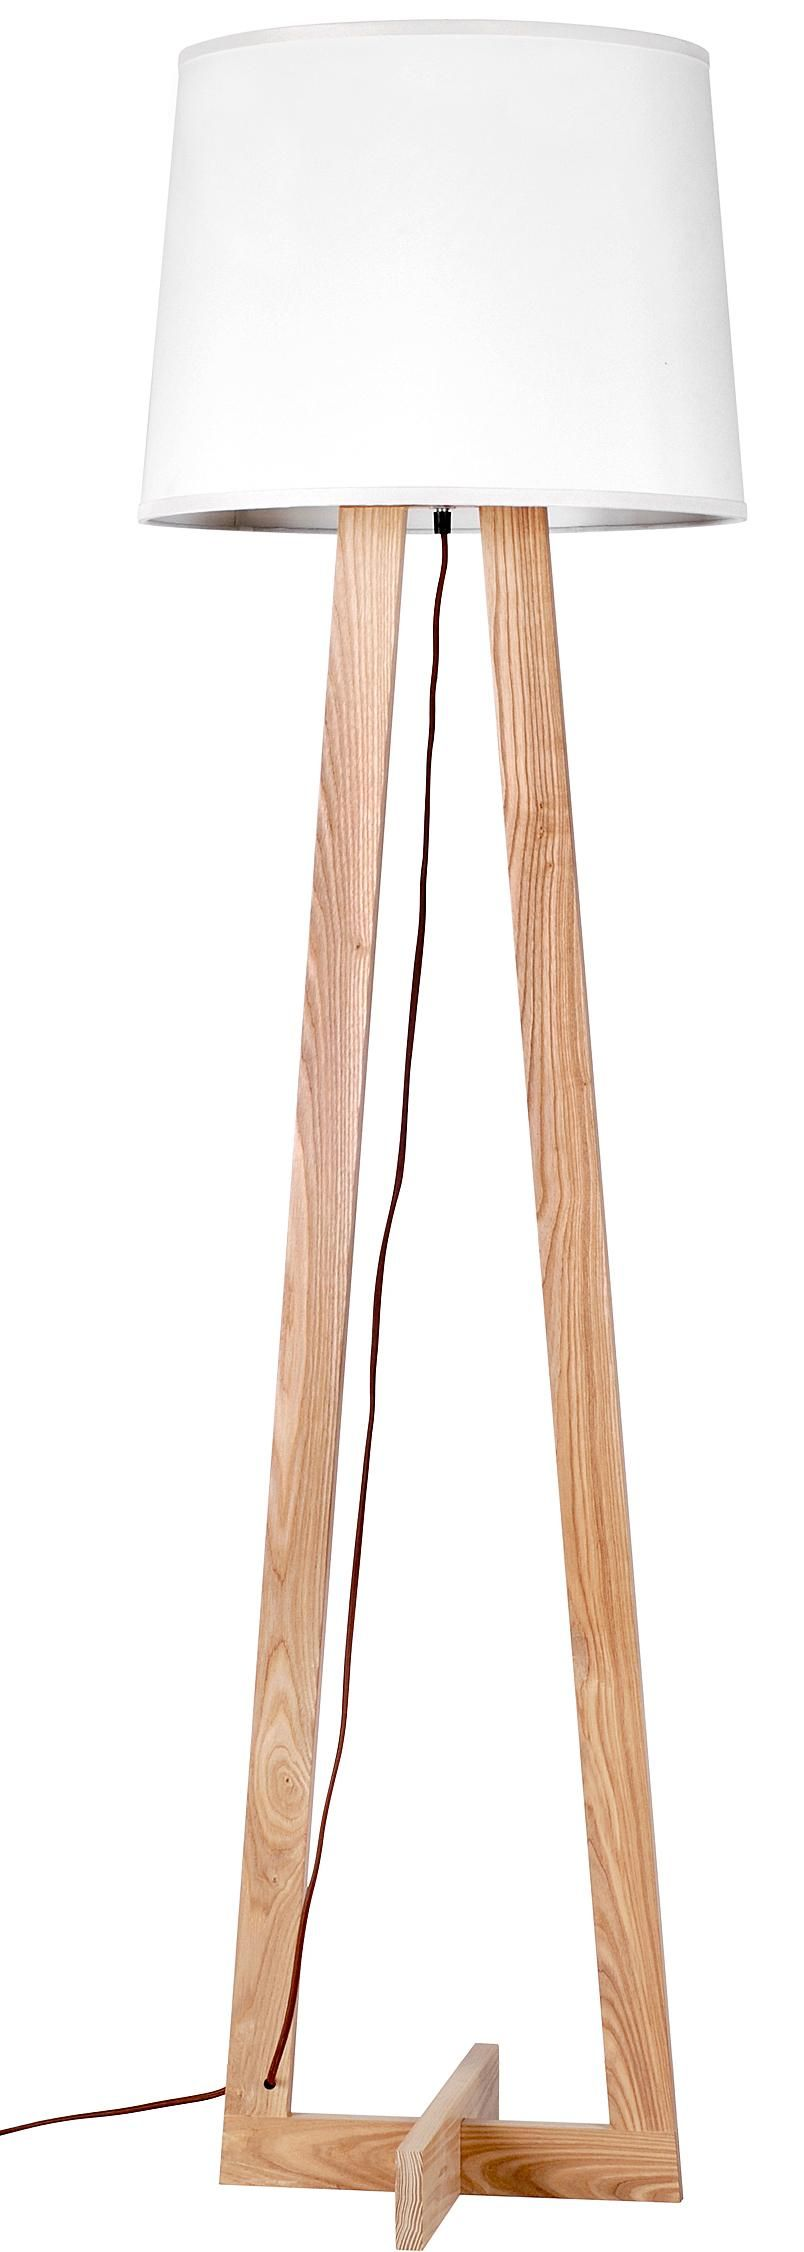 Masculine Wood Etagere Floor Lamp and ebay wood floor lamp | Decor ...